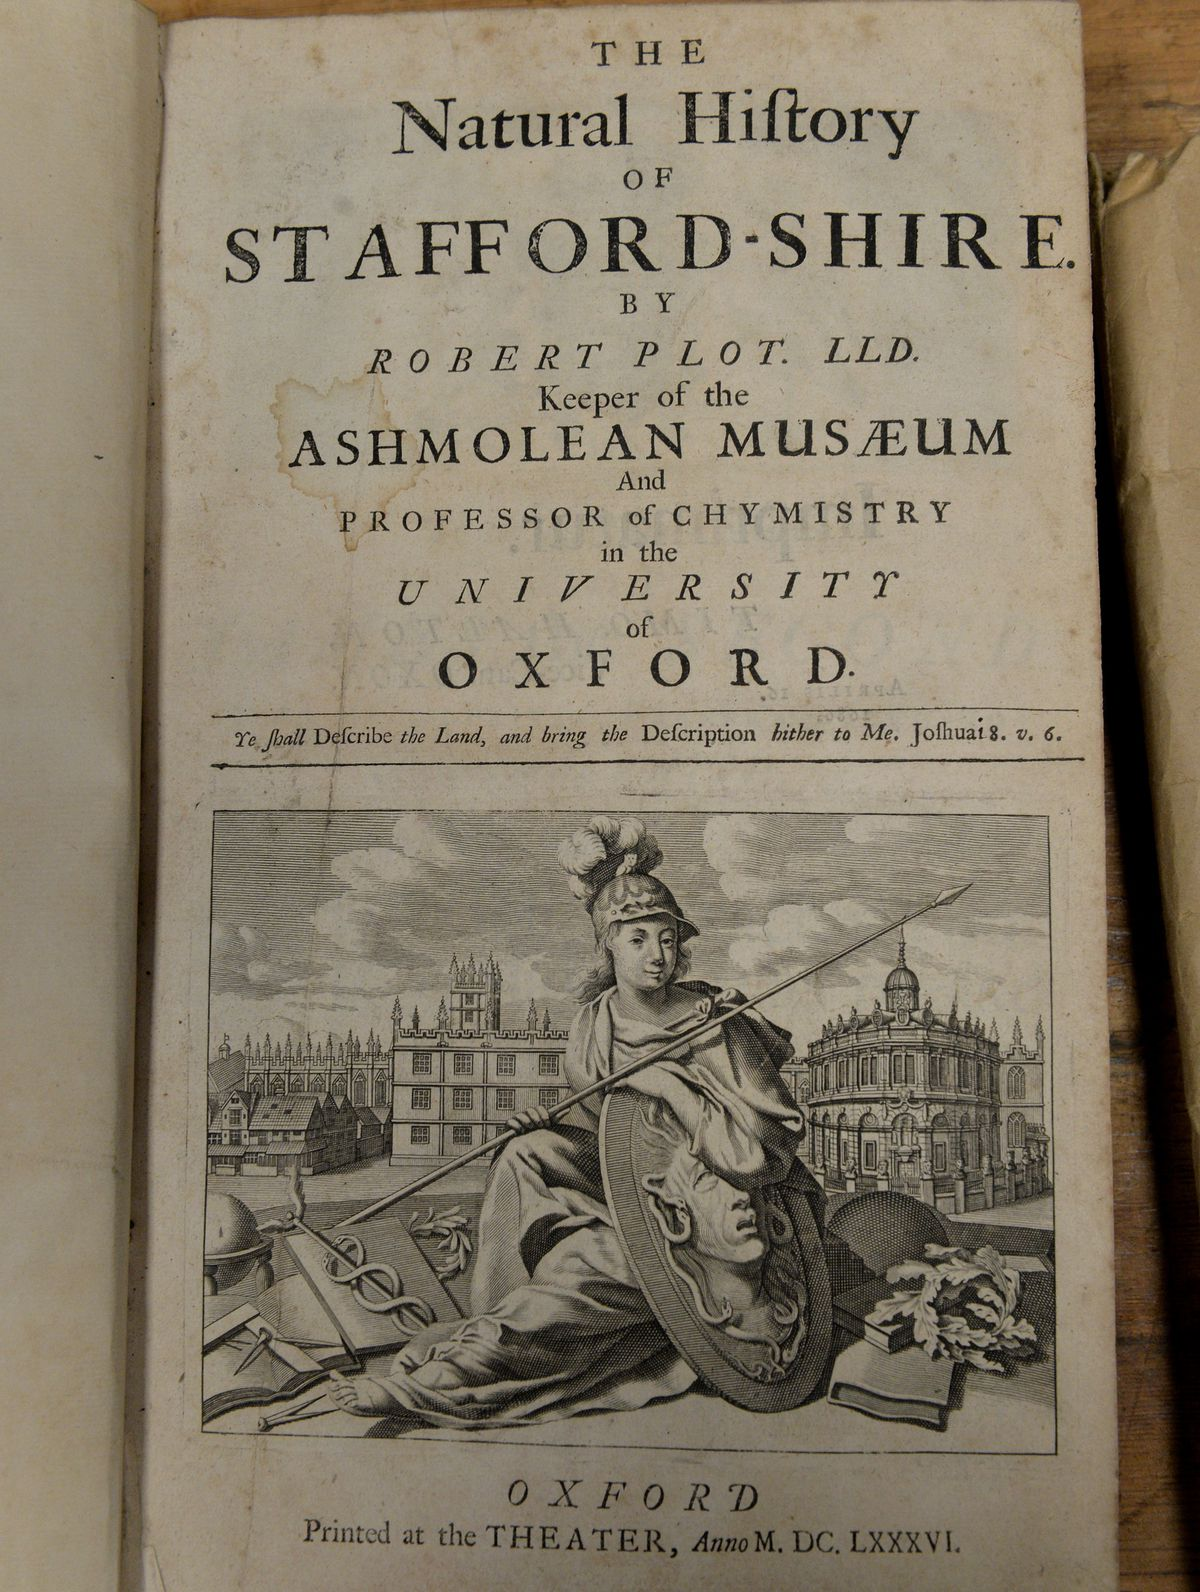 The natural history of Staffordshire from 1686